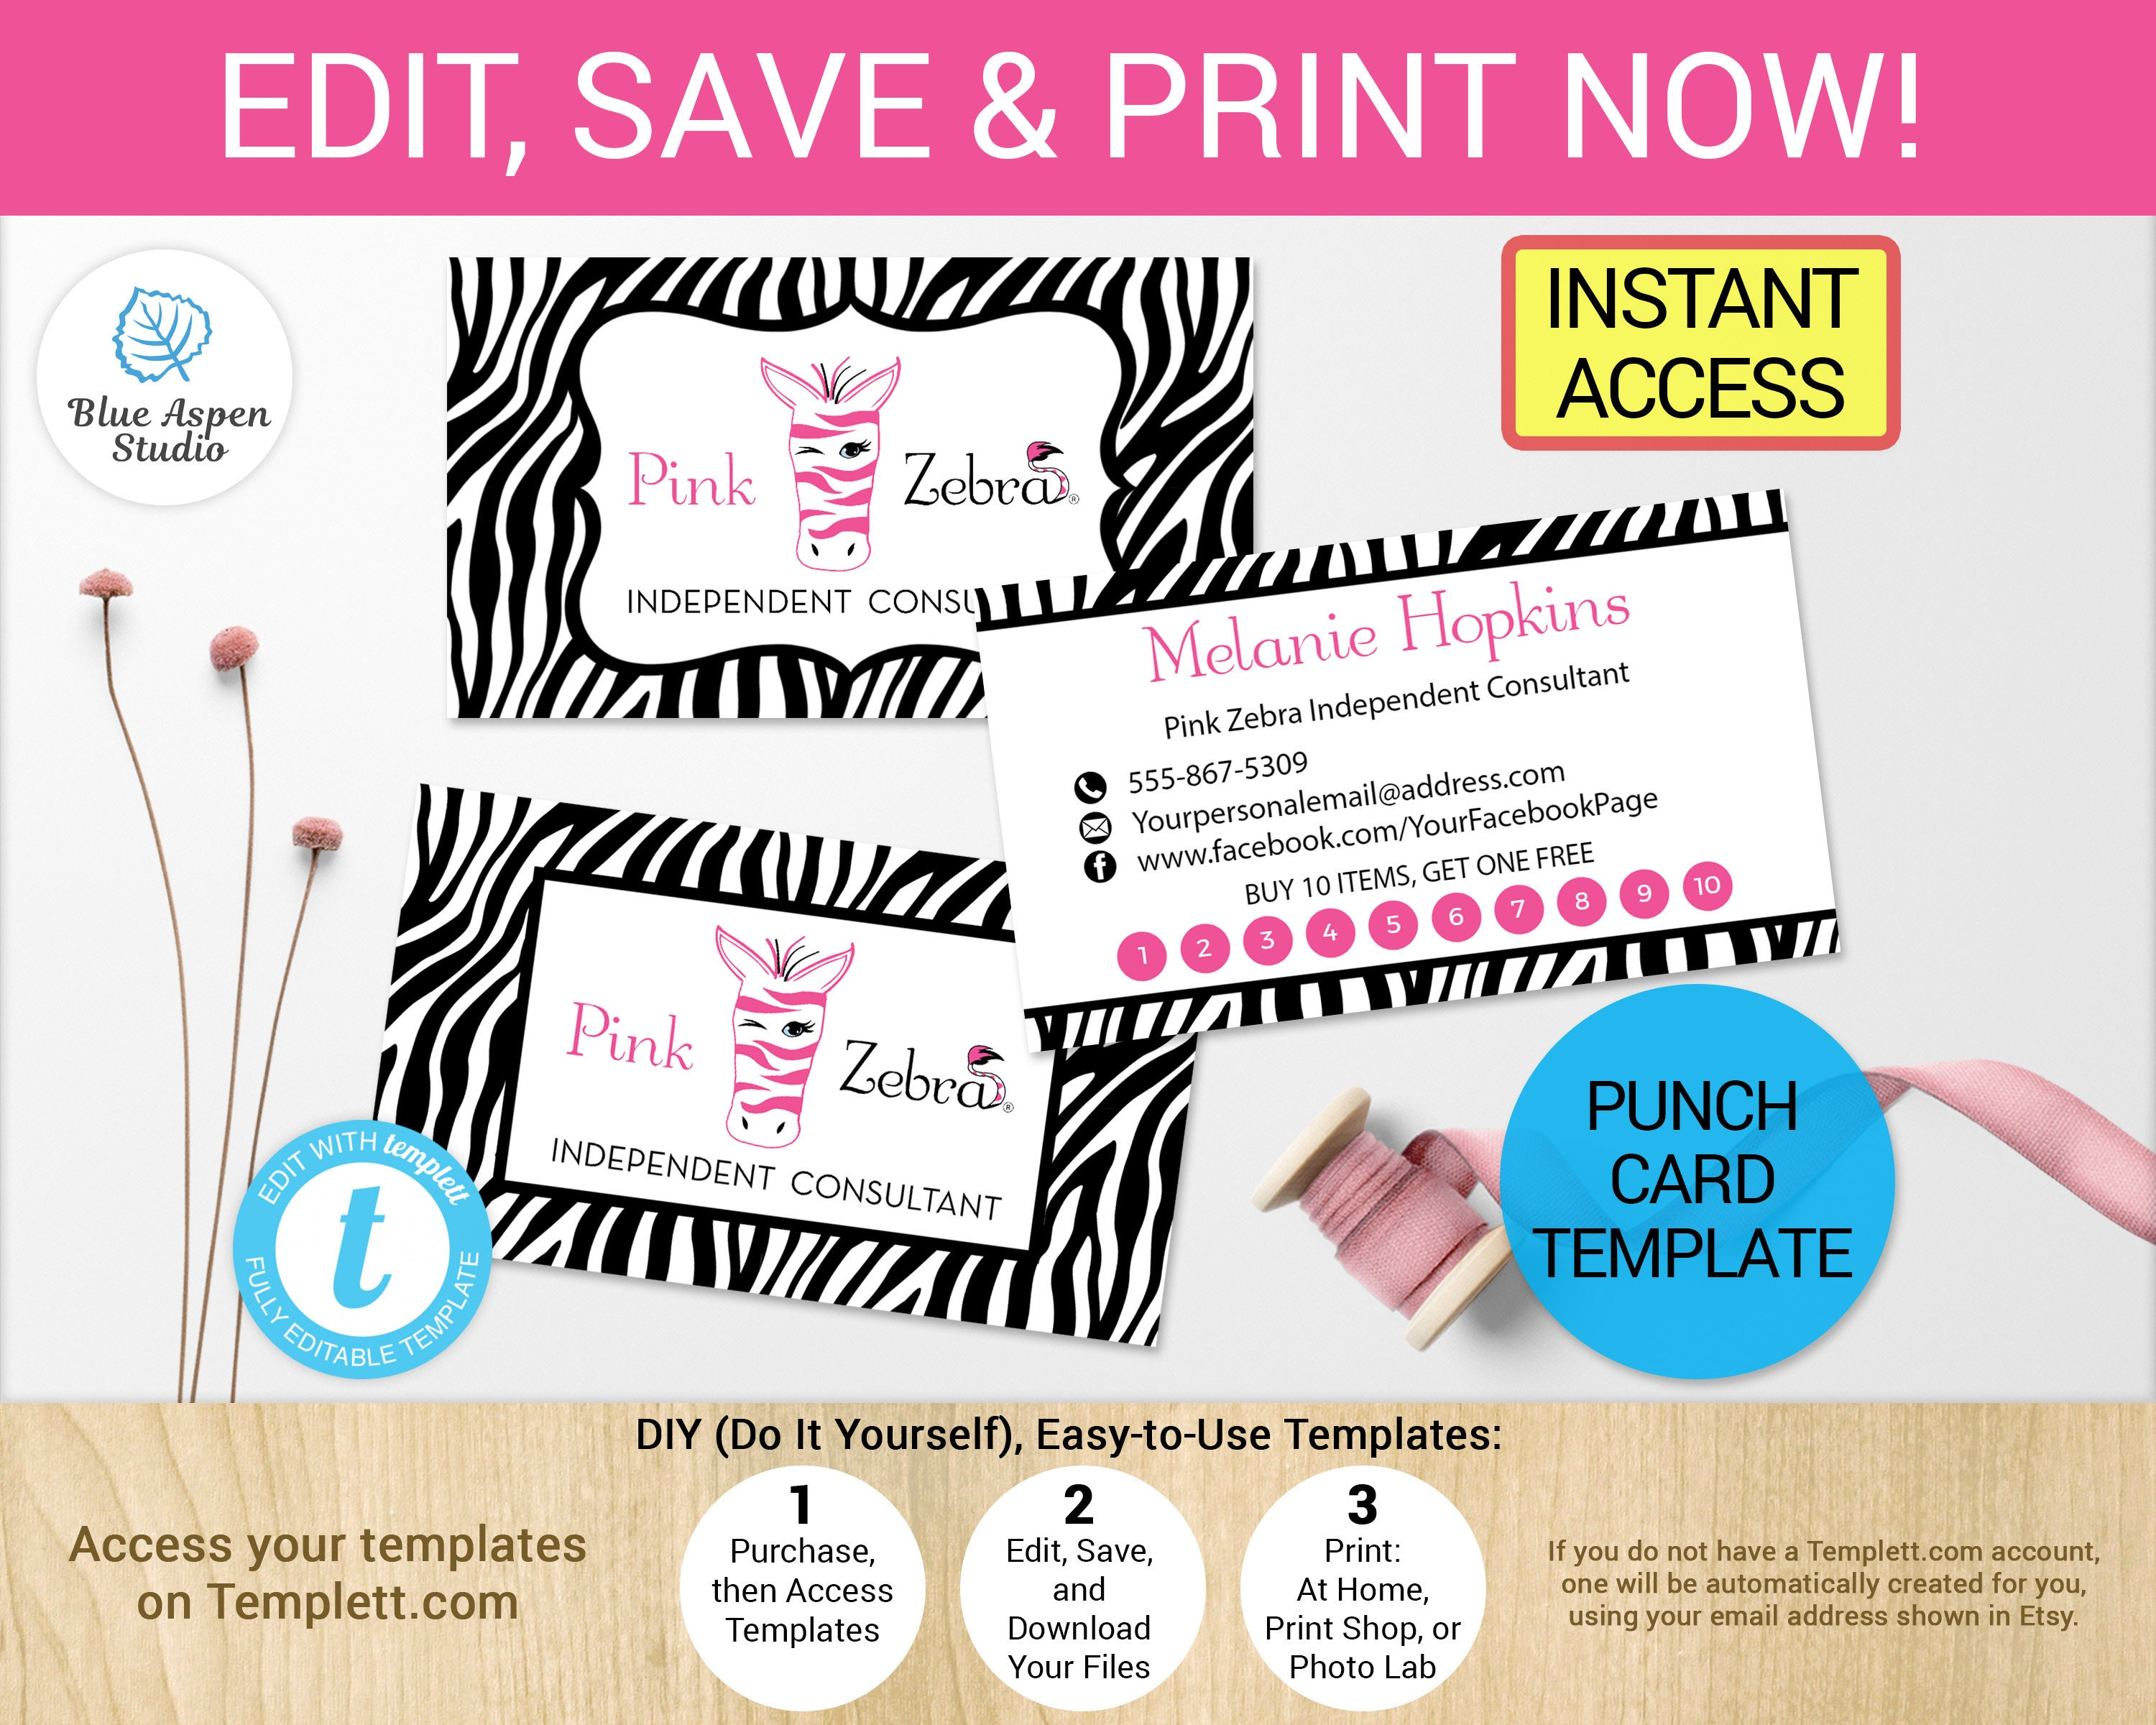 Loyalty Card Templates To Print PDF Download Oukasinfo - Free loyalty card template download